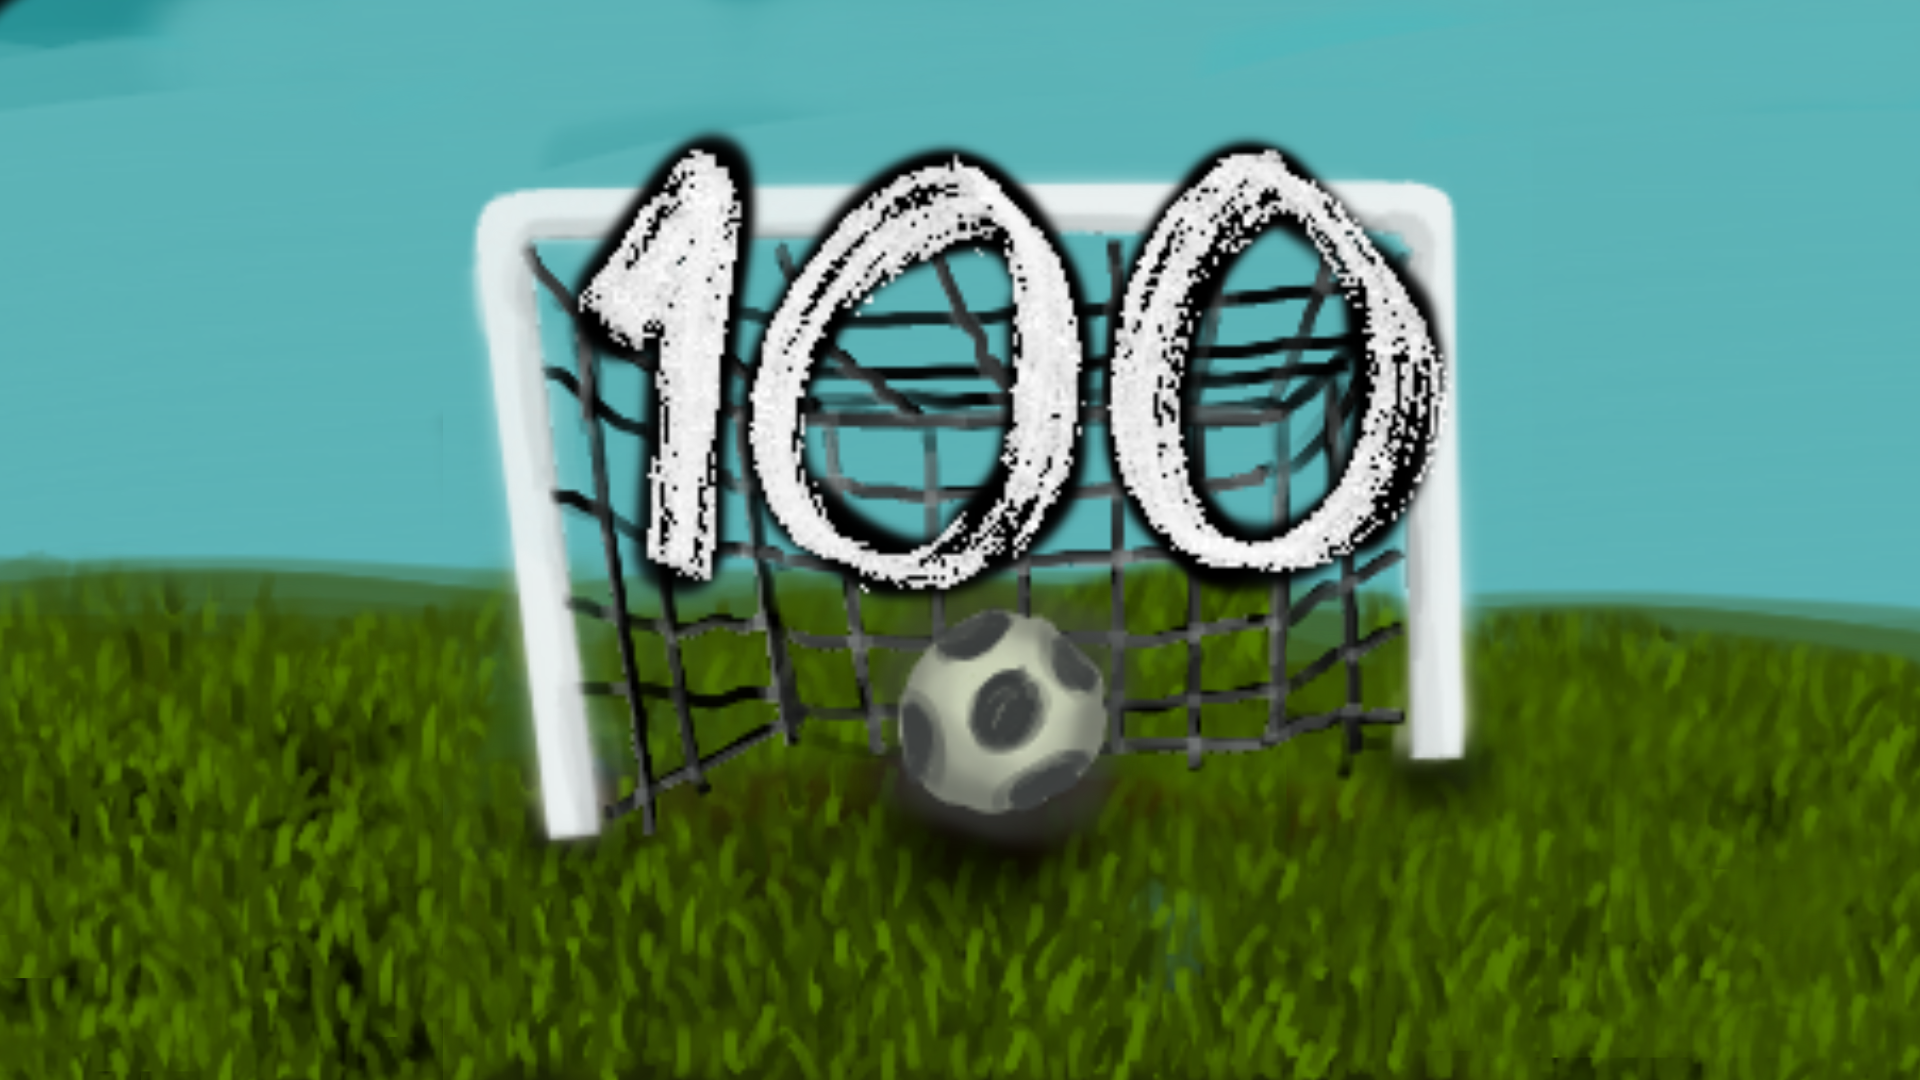 Icon for 100 Goals scored.